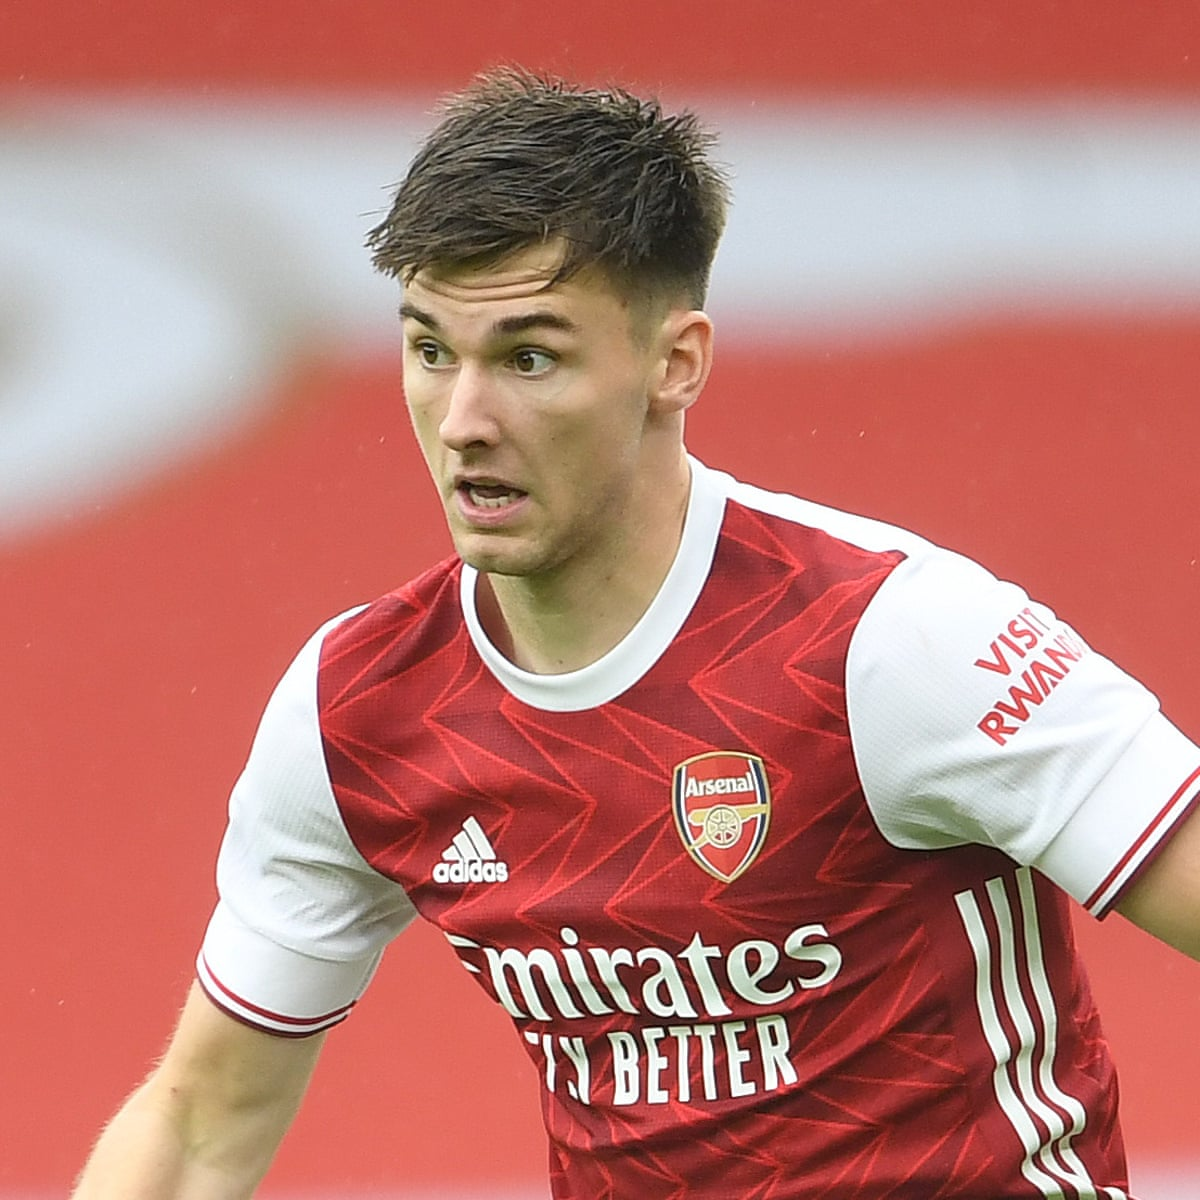 The 24-year old son of father (?) and mother(?) Kieran Tierney in 2021 photo. Kieran Tierney earned a 3.5 million dollar salary - leaving the net worth at  million in 2021